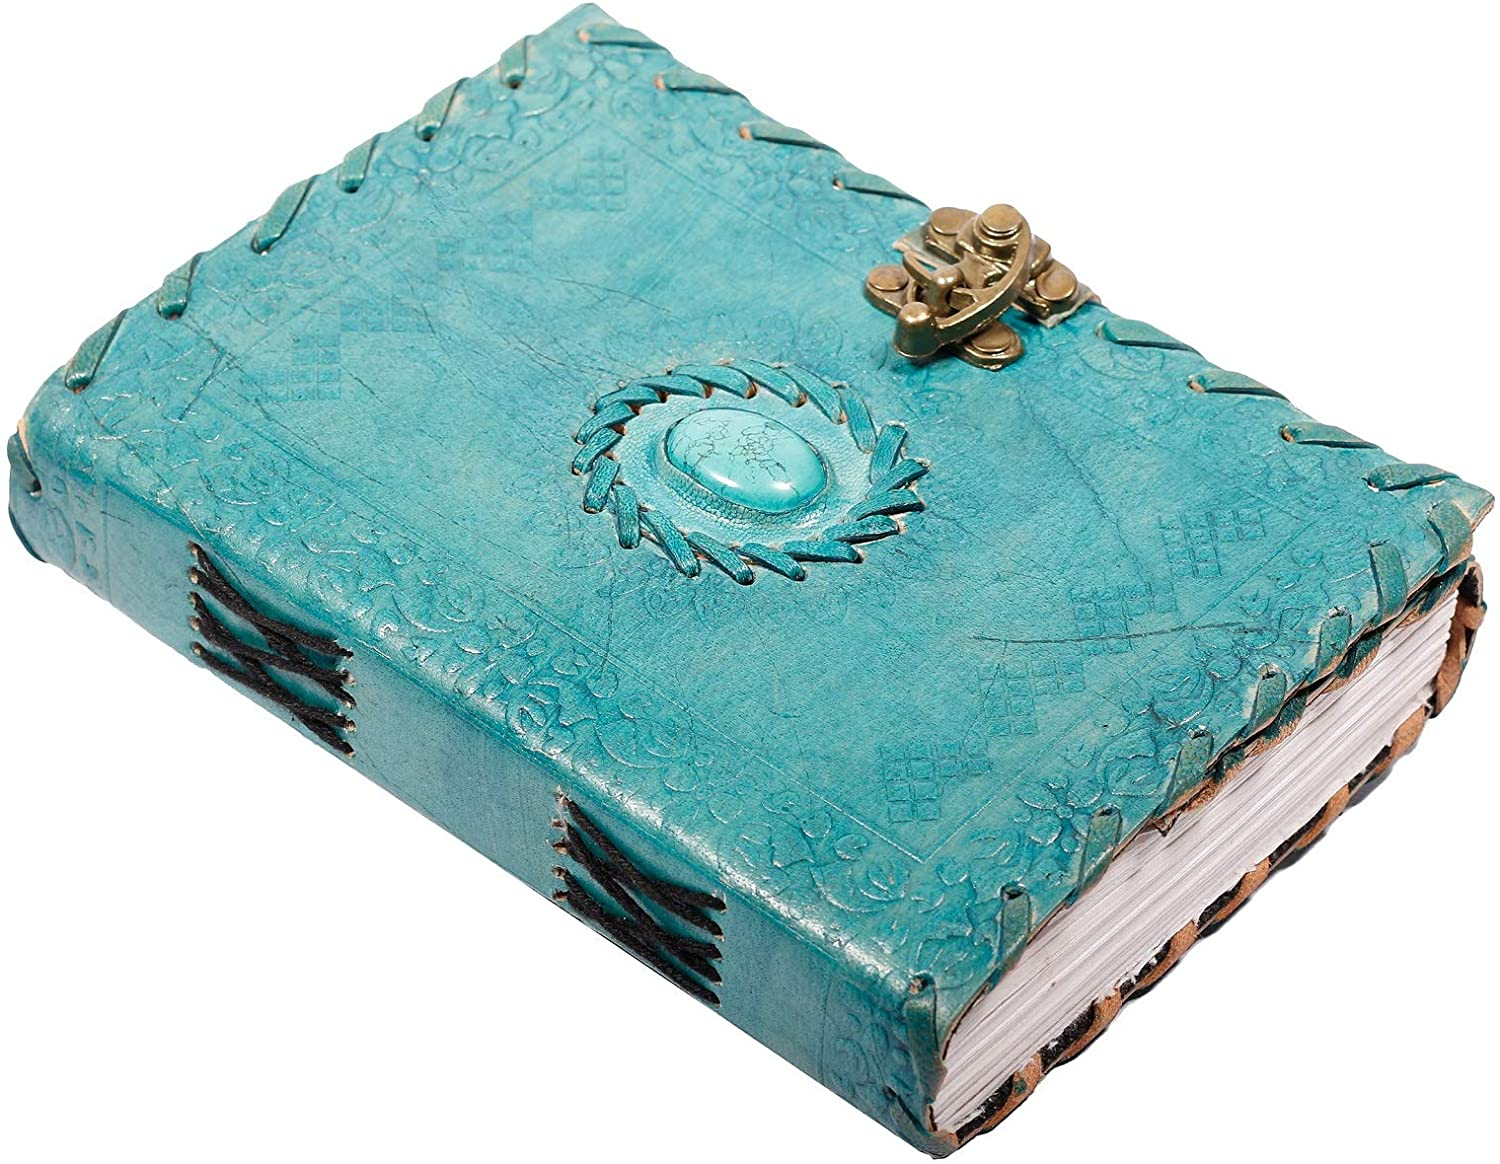 Tuzech Leather Travel Writing Journal Handmade - 100% Pure Genuine Leather Diary Vintage Unique for Men Women Kids   Used in Home School Office with C-Lock Ocean Blue (7 Inches)